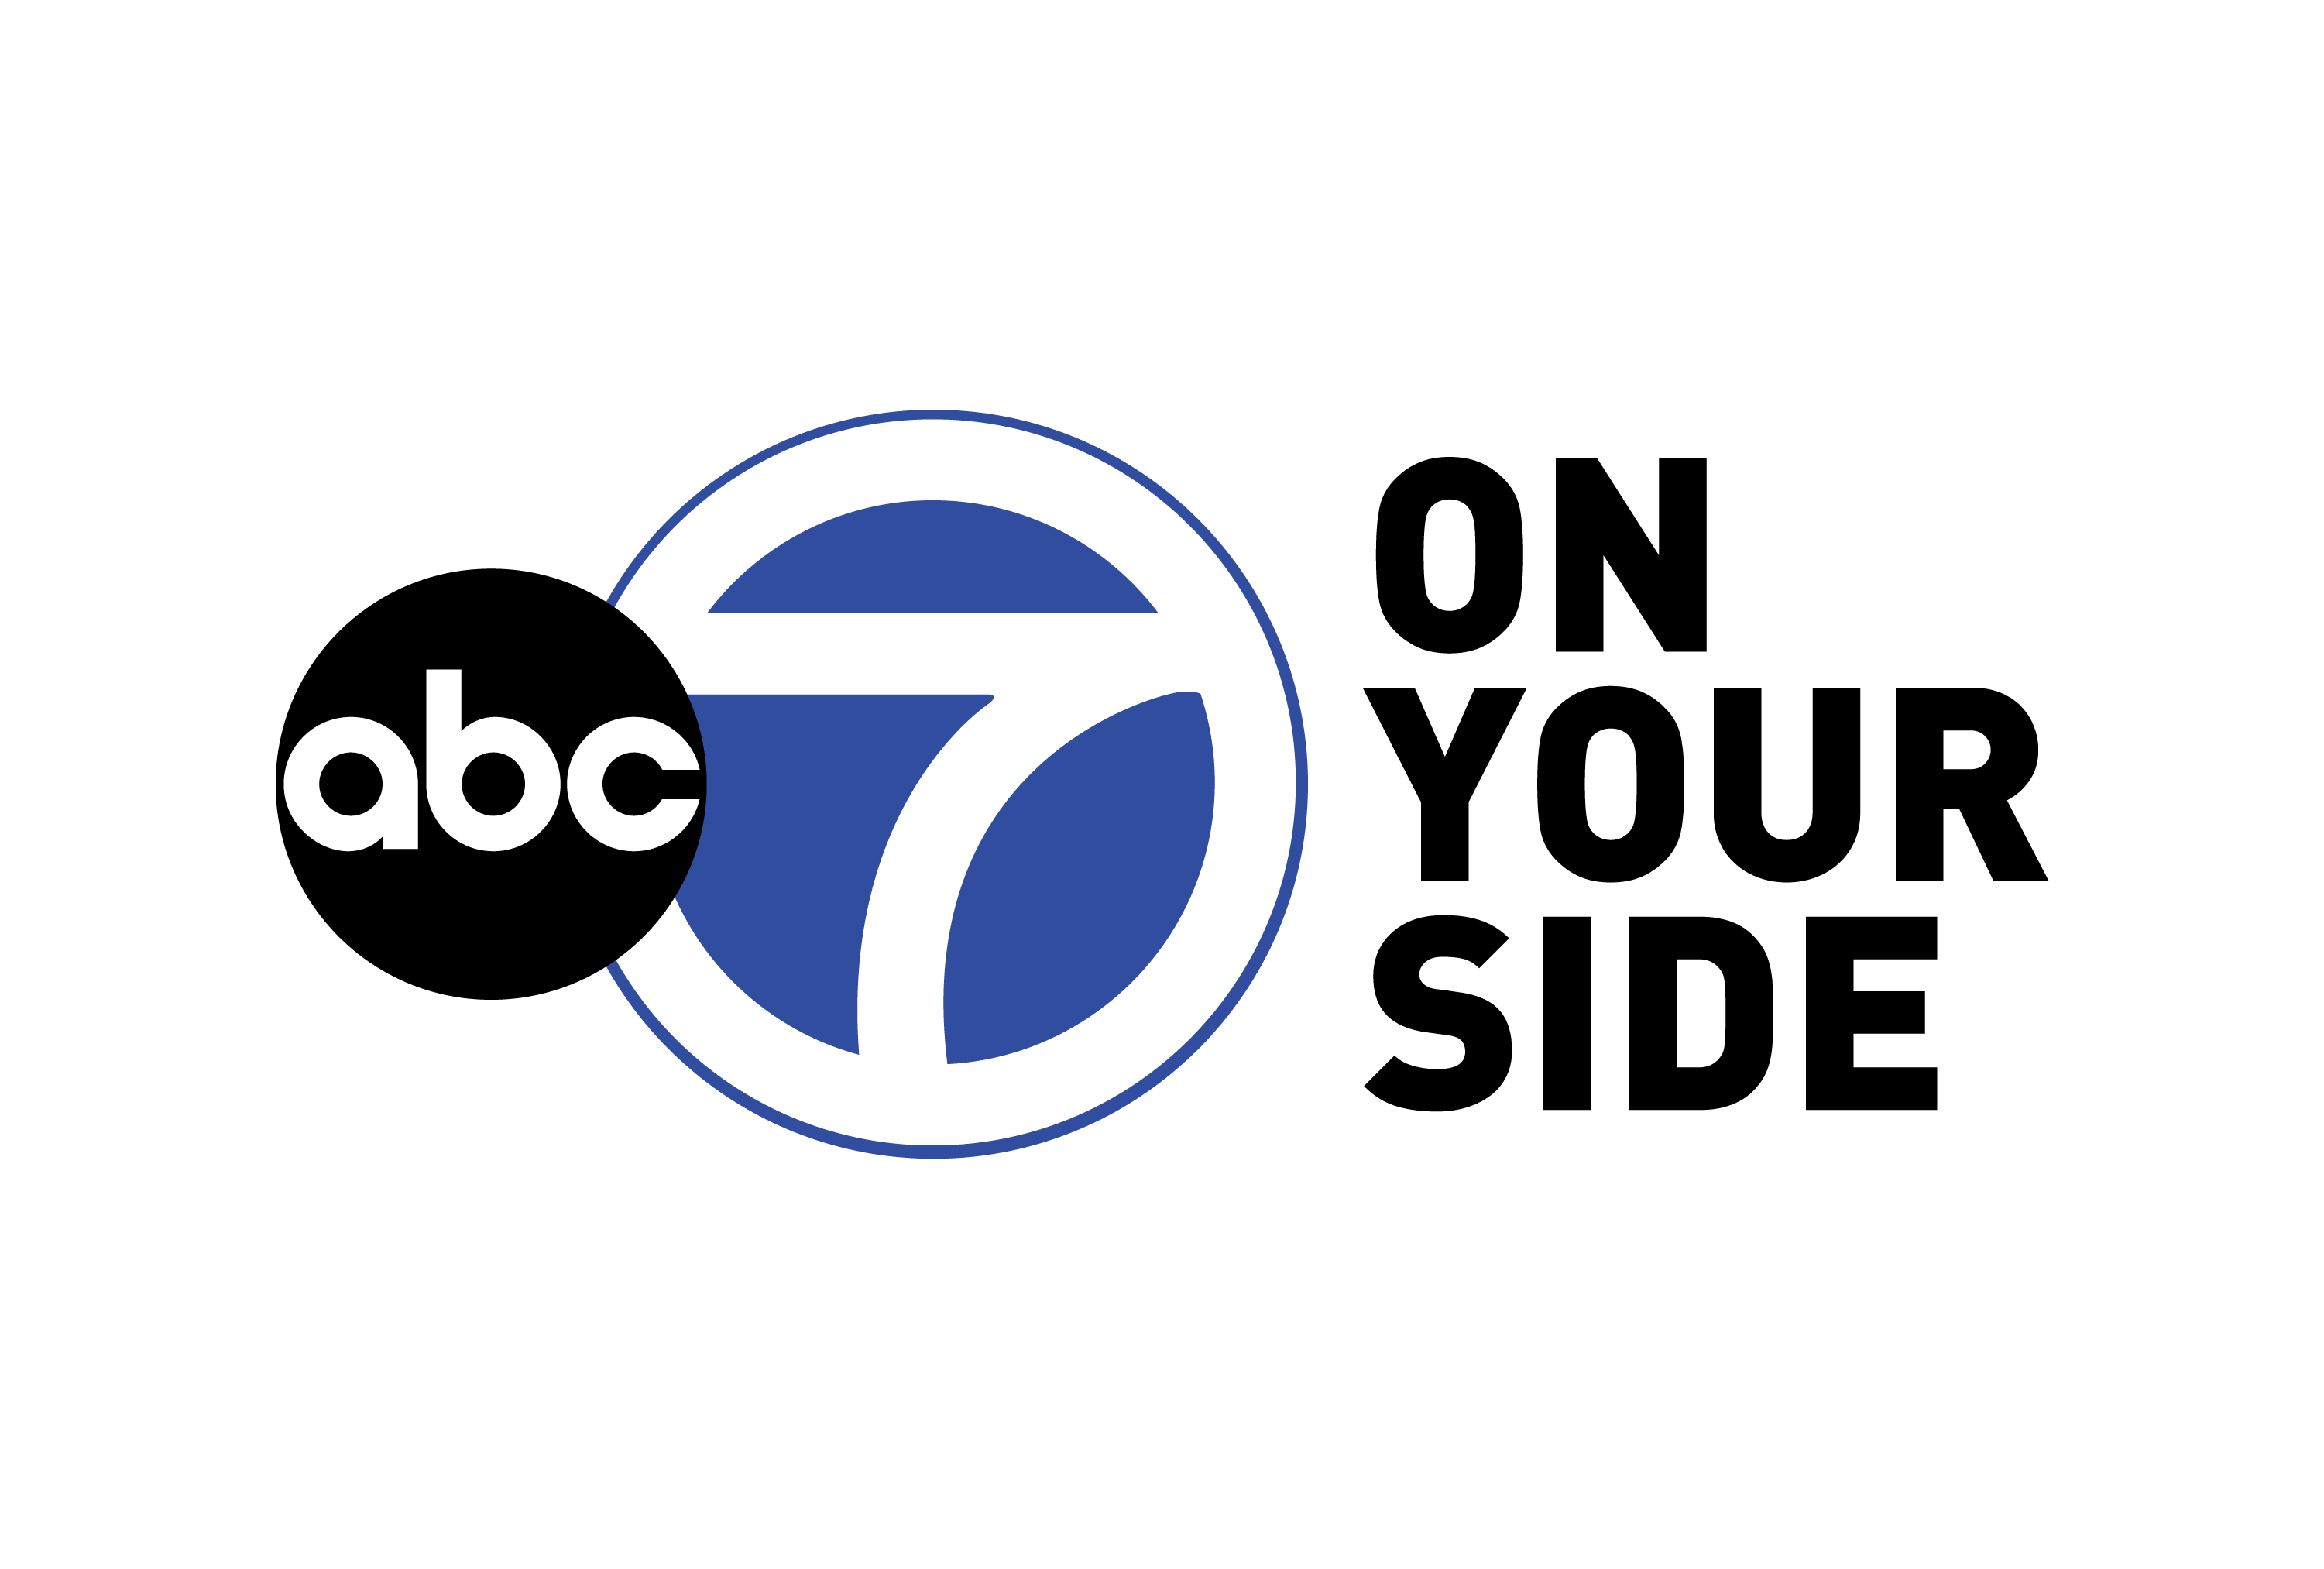 WJLA Television